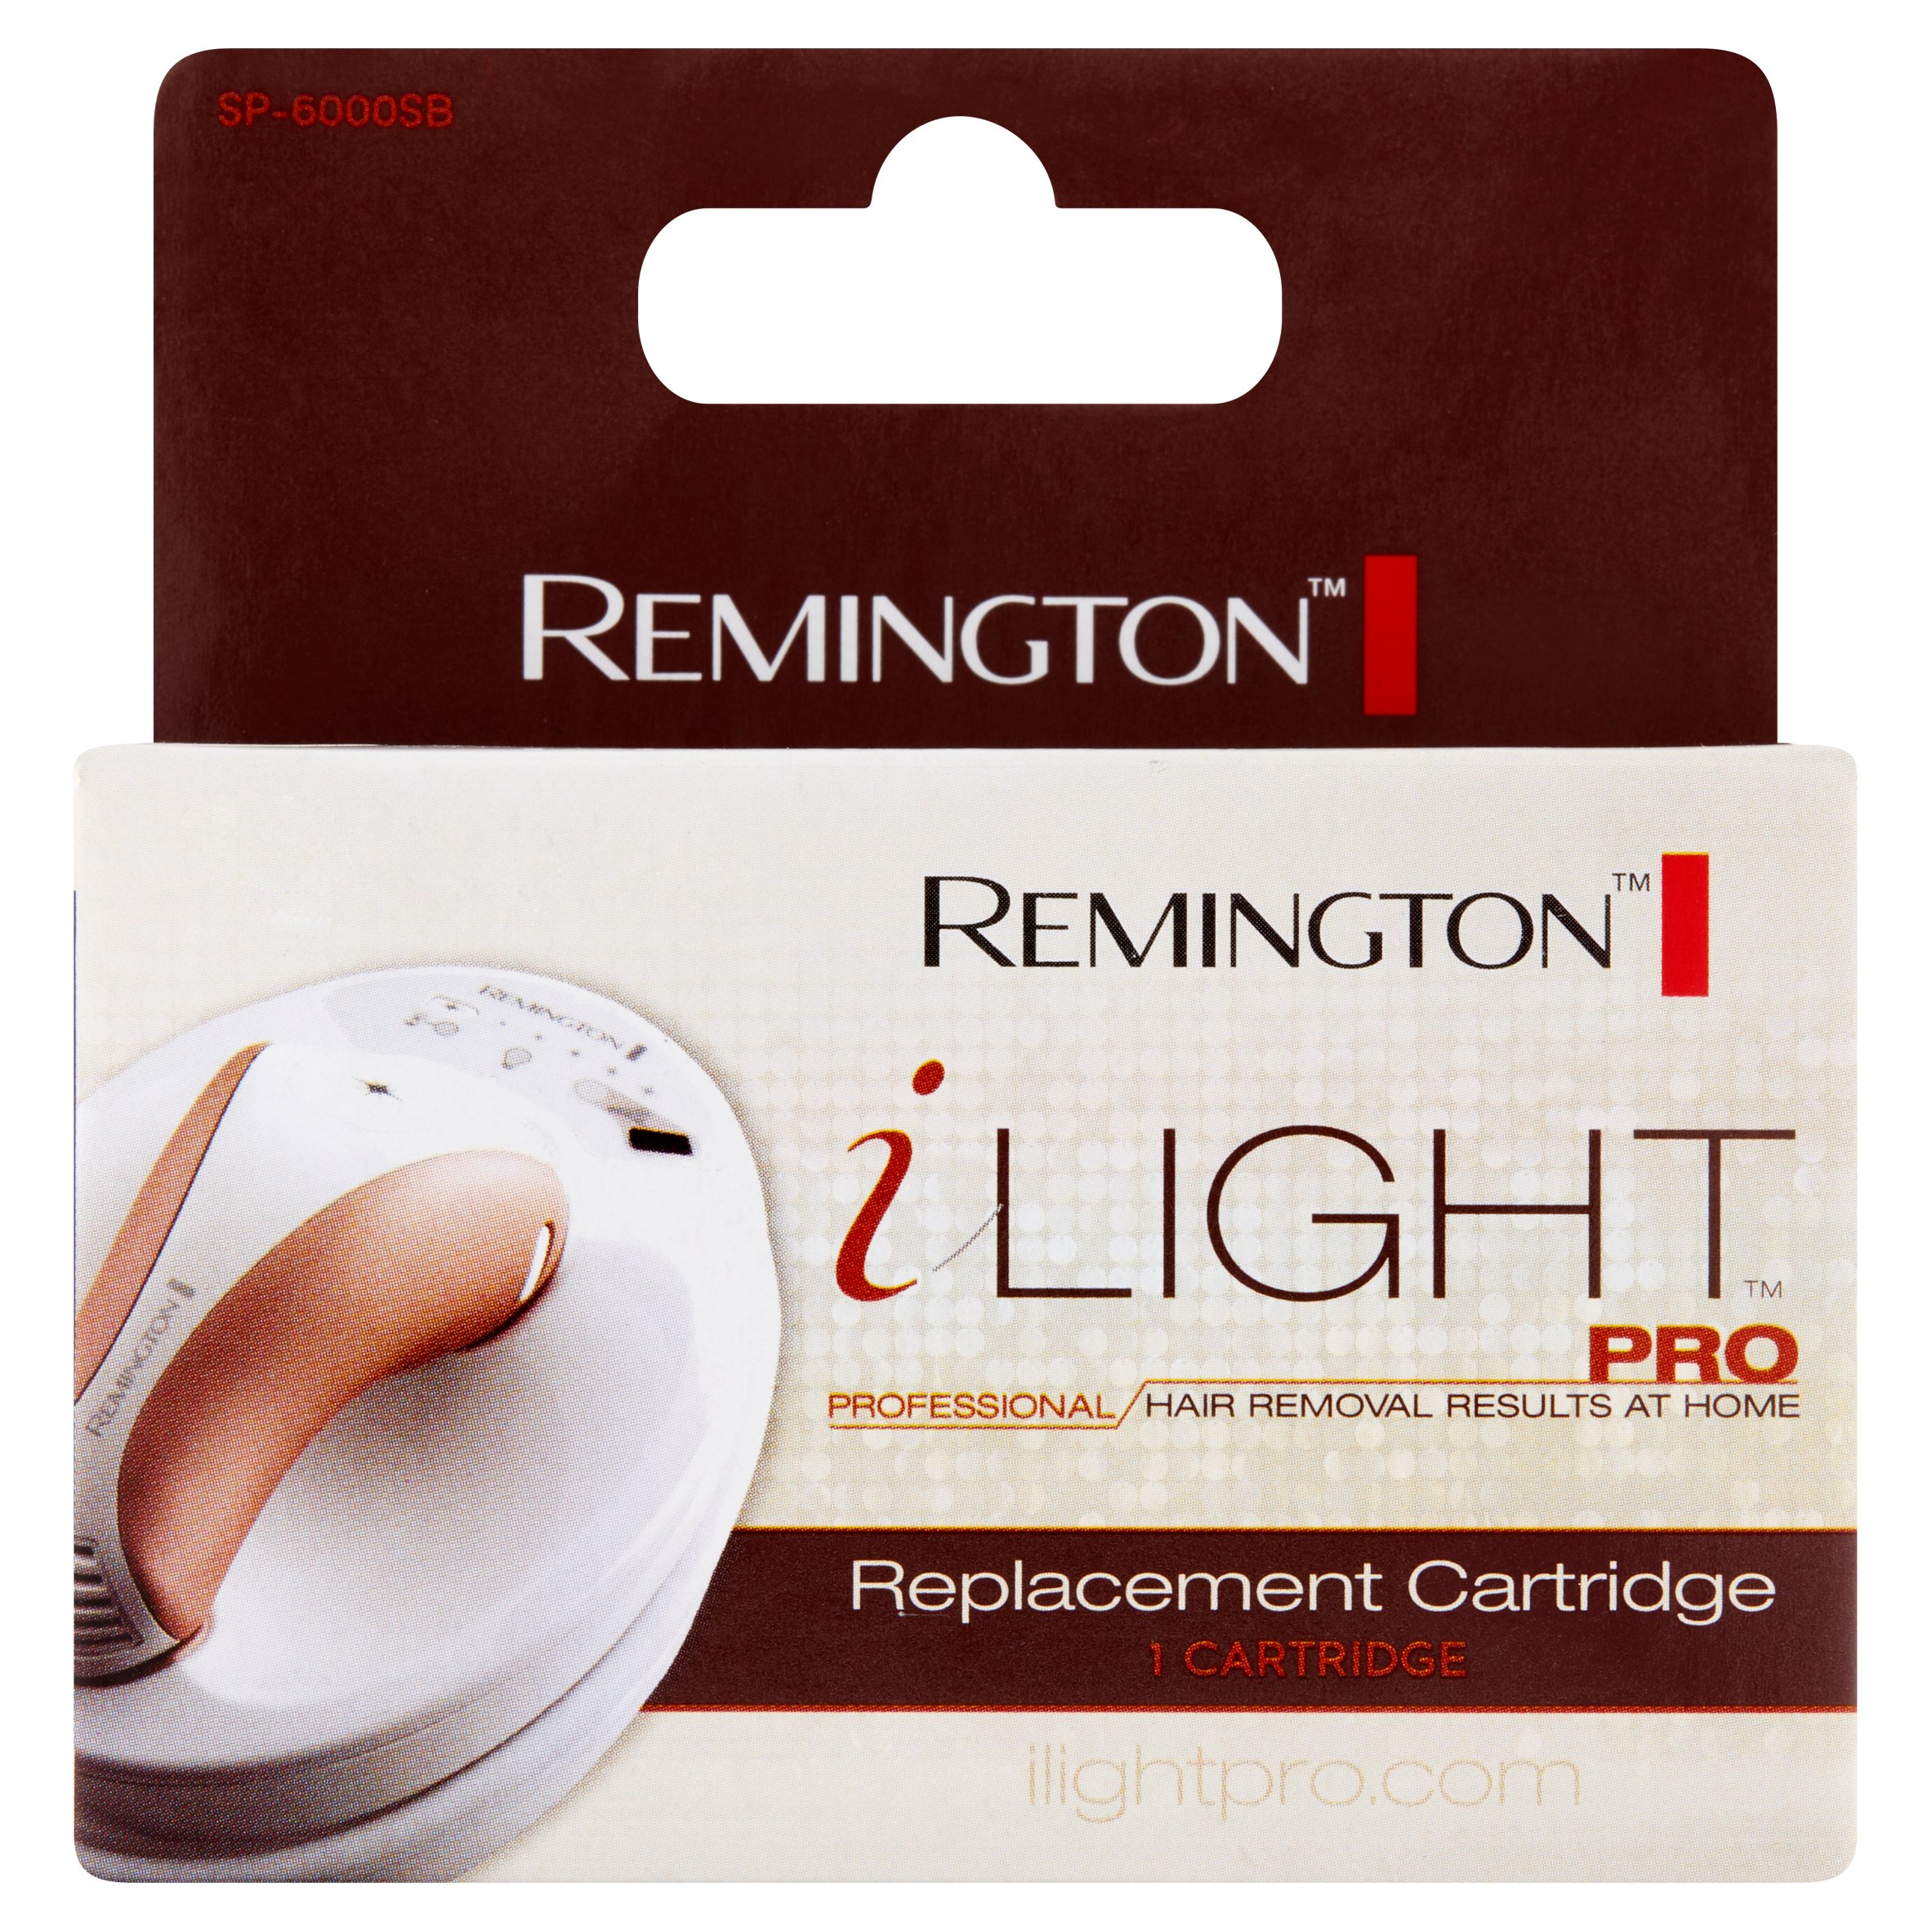 Remington SP6000SB Replacement Cartridge iLIGHT Pro Hair Removal System